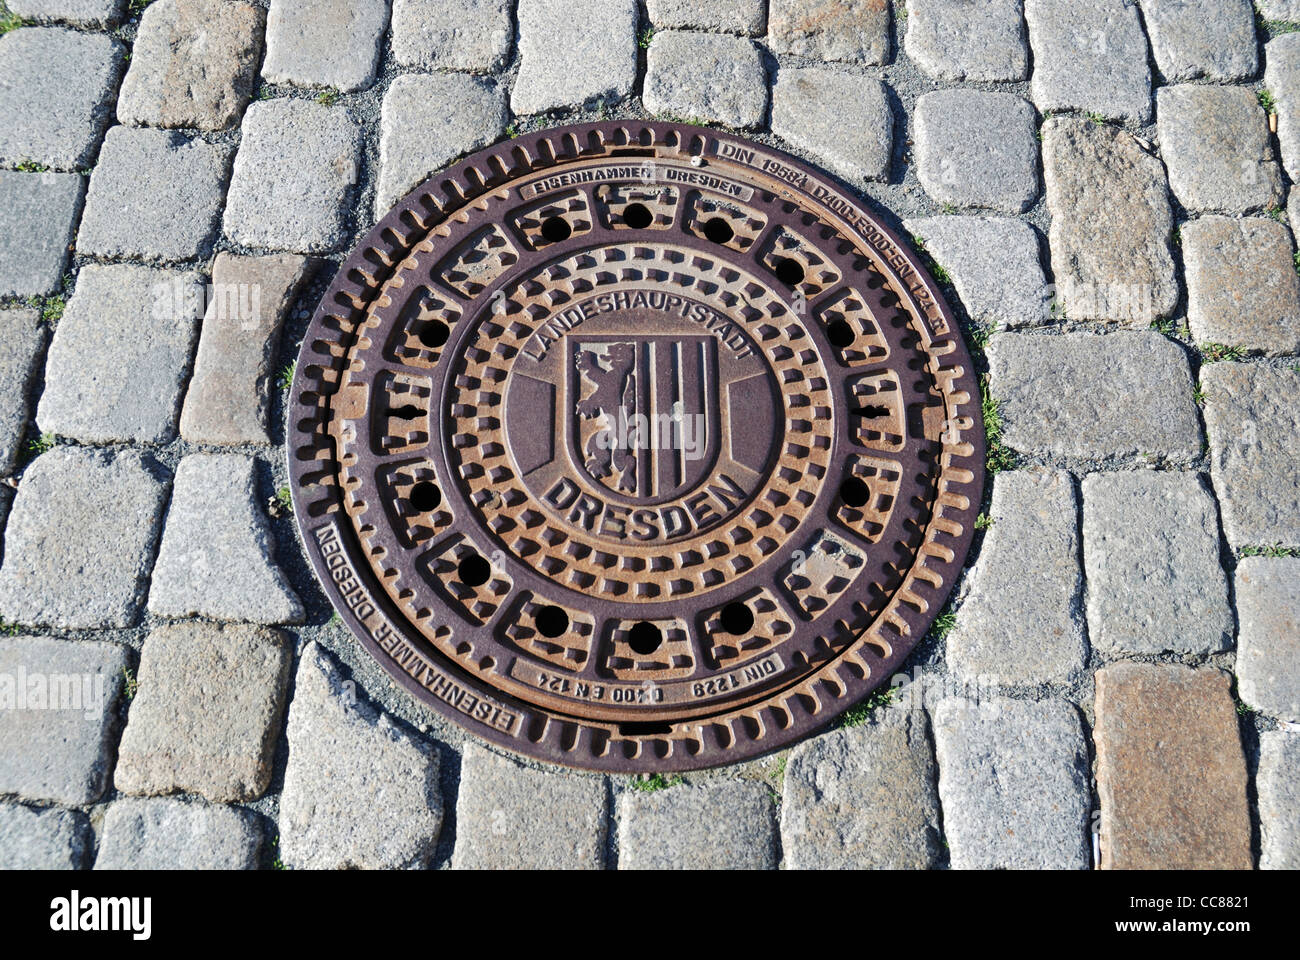 Cast-iron manhole cover with coat of arms of the city of Dresden. - Stock Image